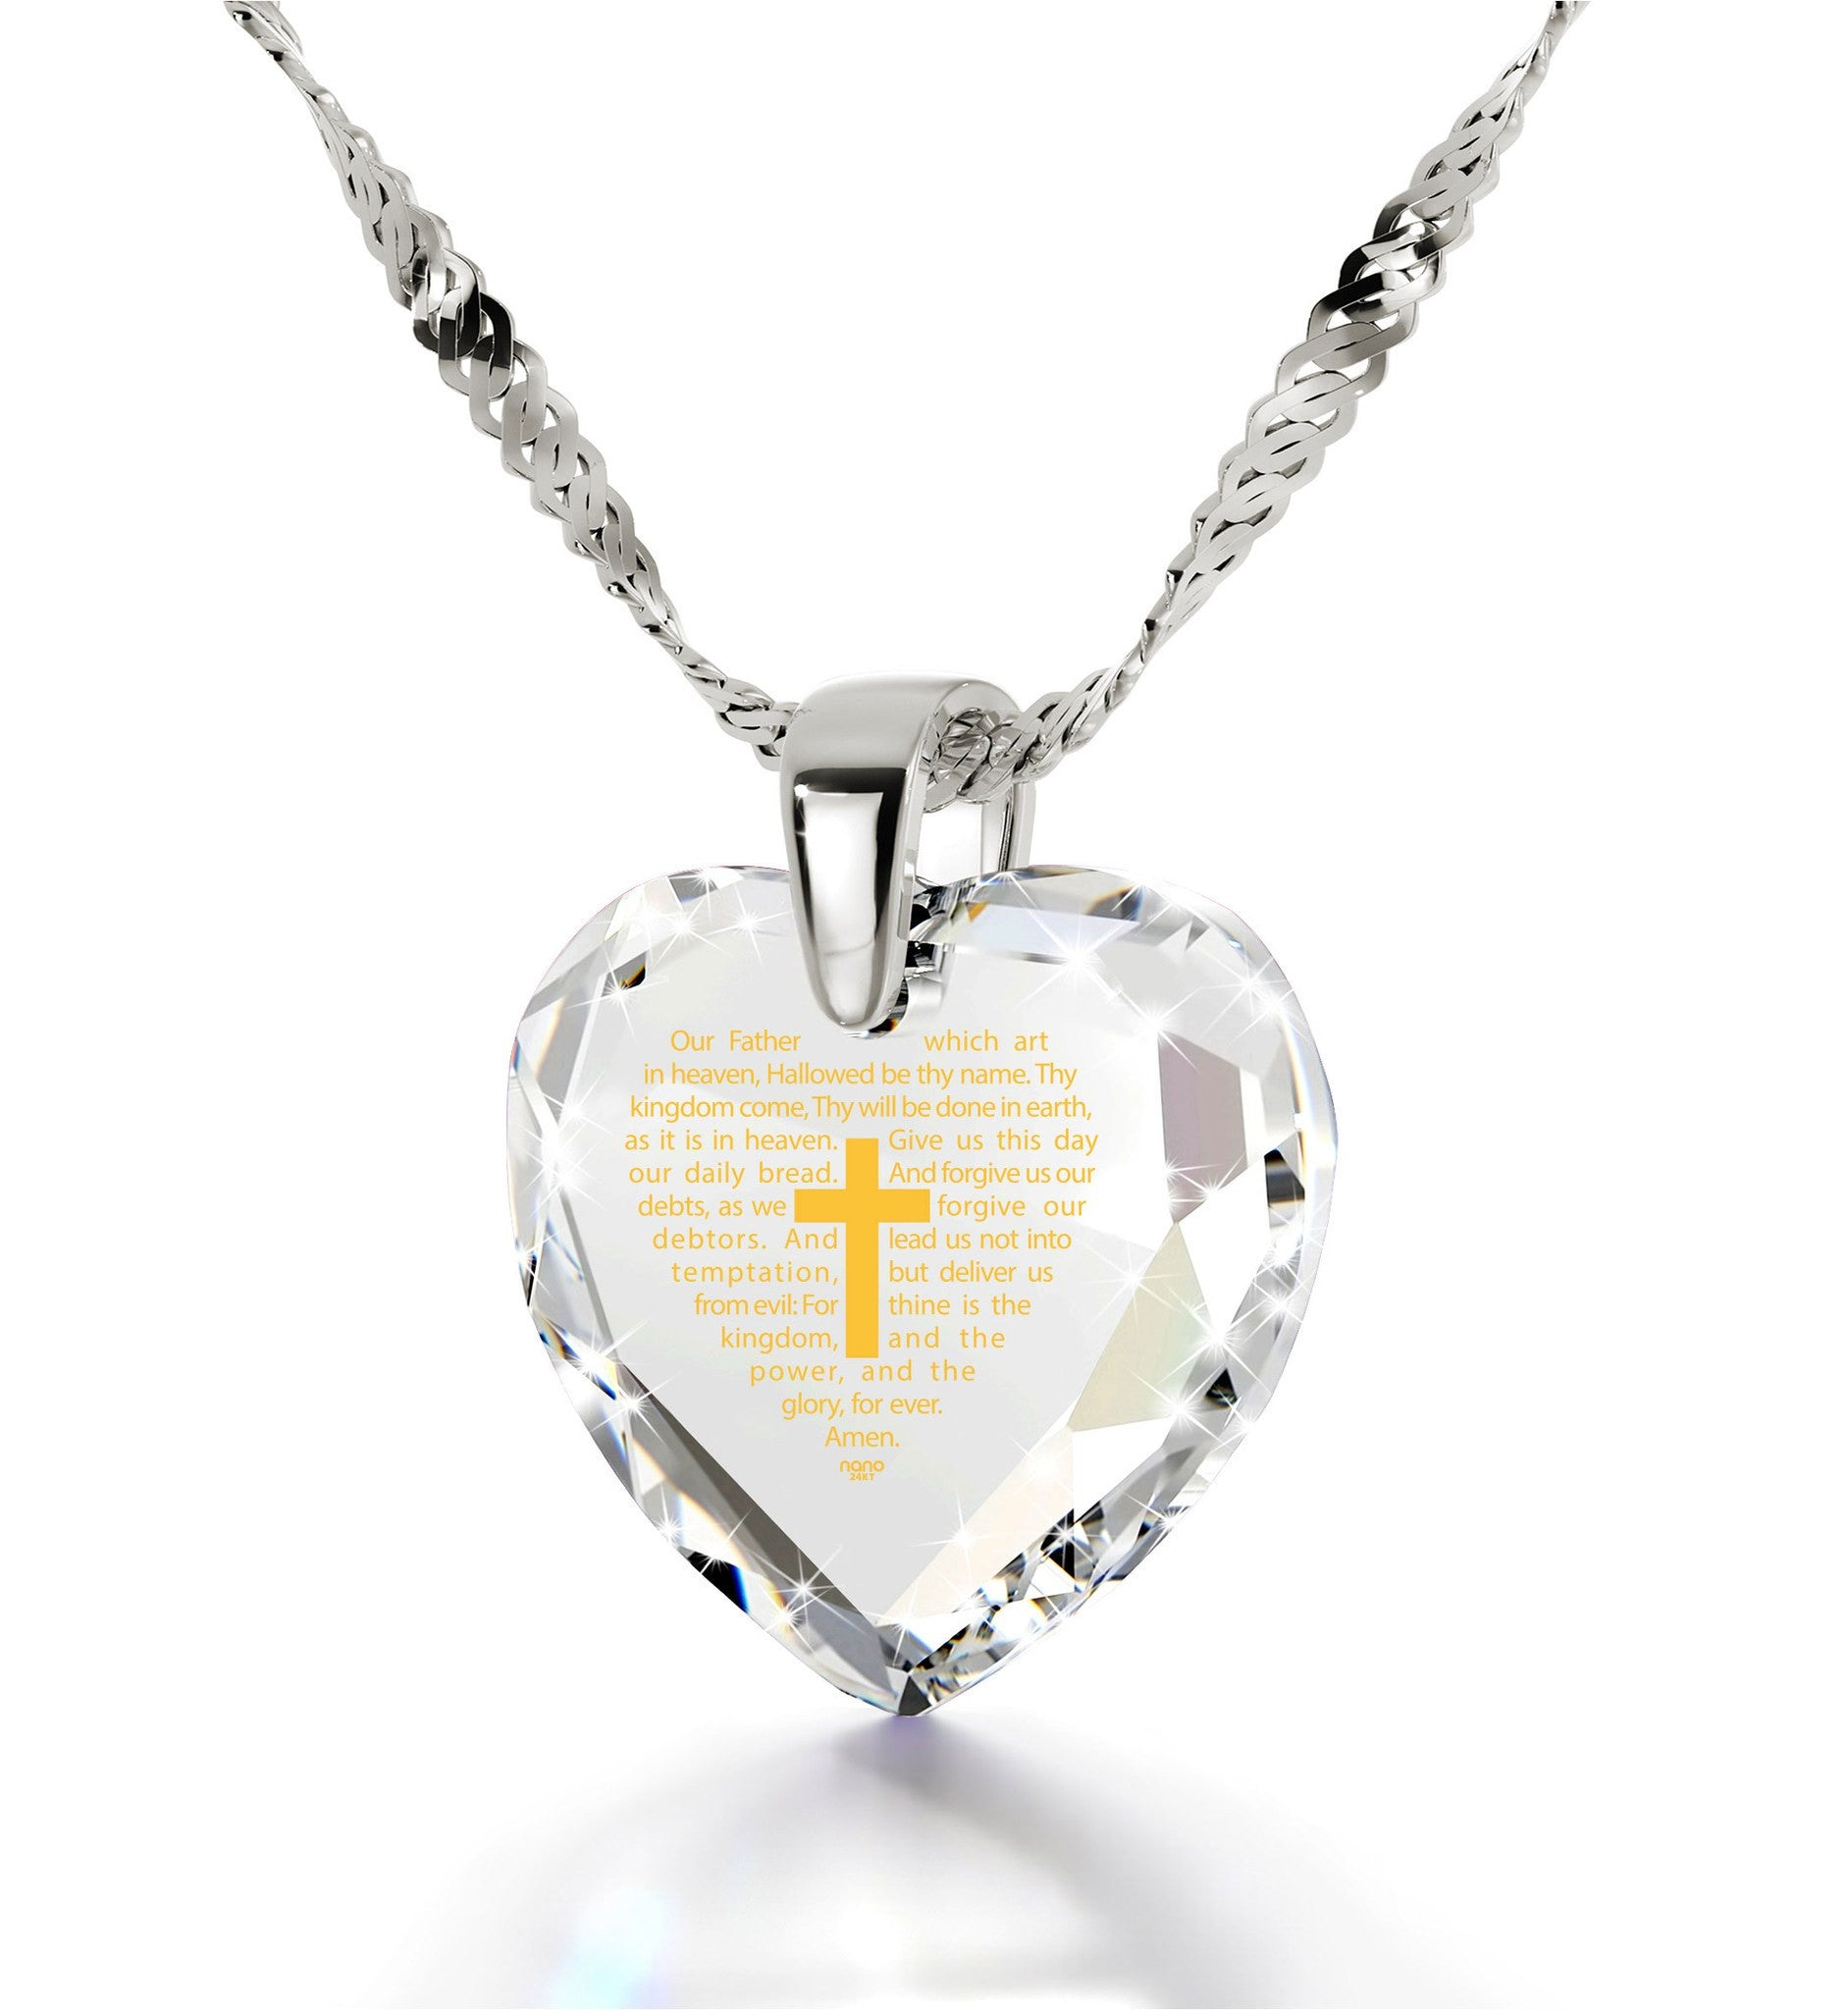 """Our Father: Crystal Heart Pendant, What to Get Girlfriend for Christmas, Cross Necklace for Girl, Nano Jewelry """